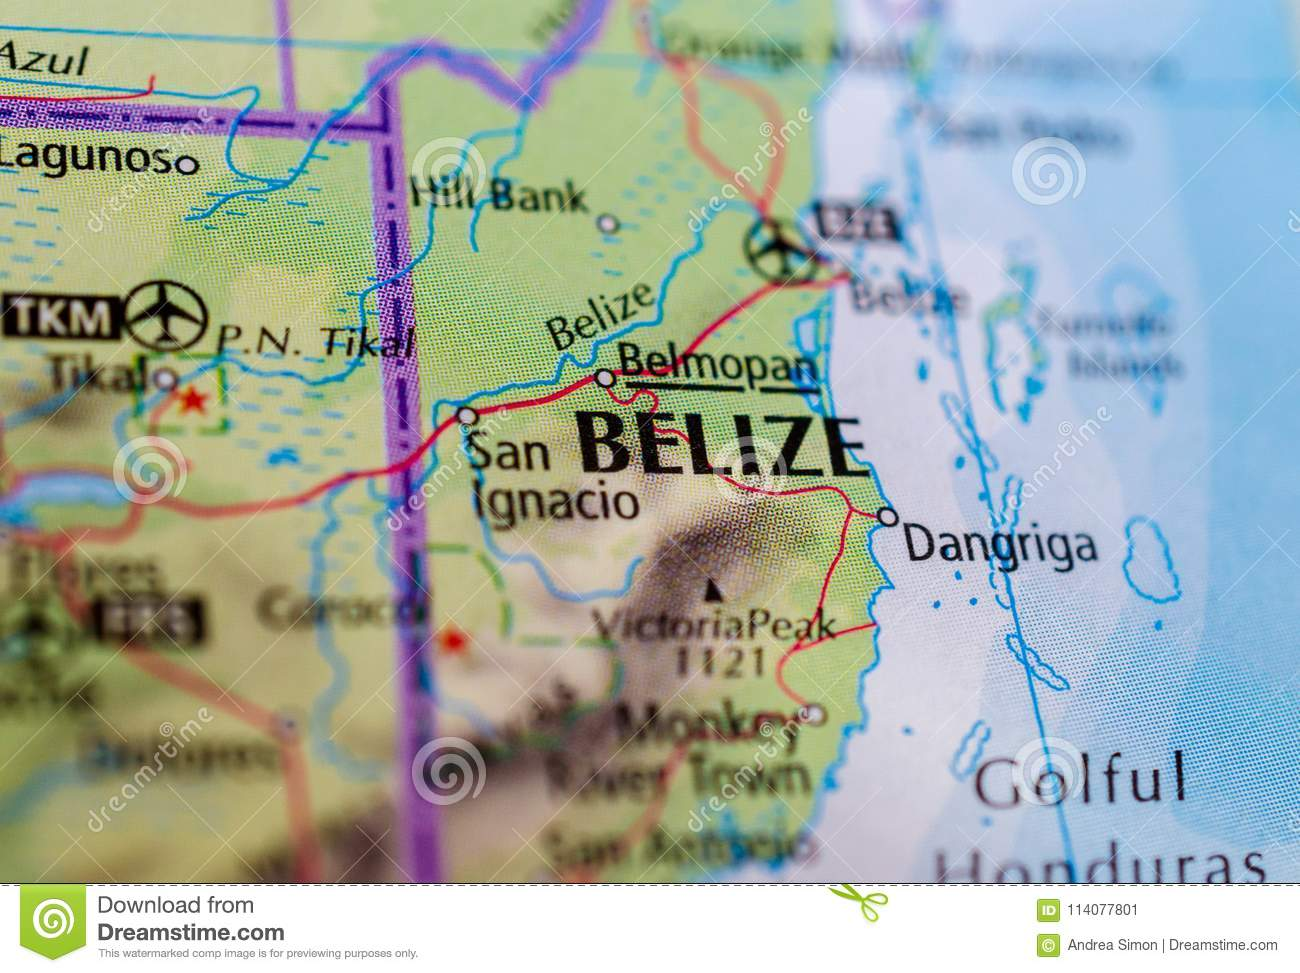 Belize on map stock image. Image of journey, america - 114077801